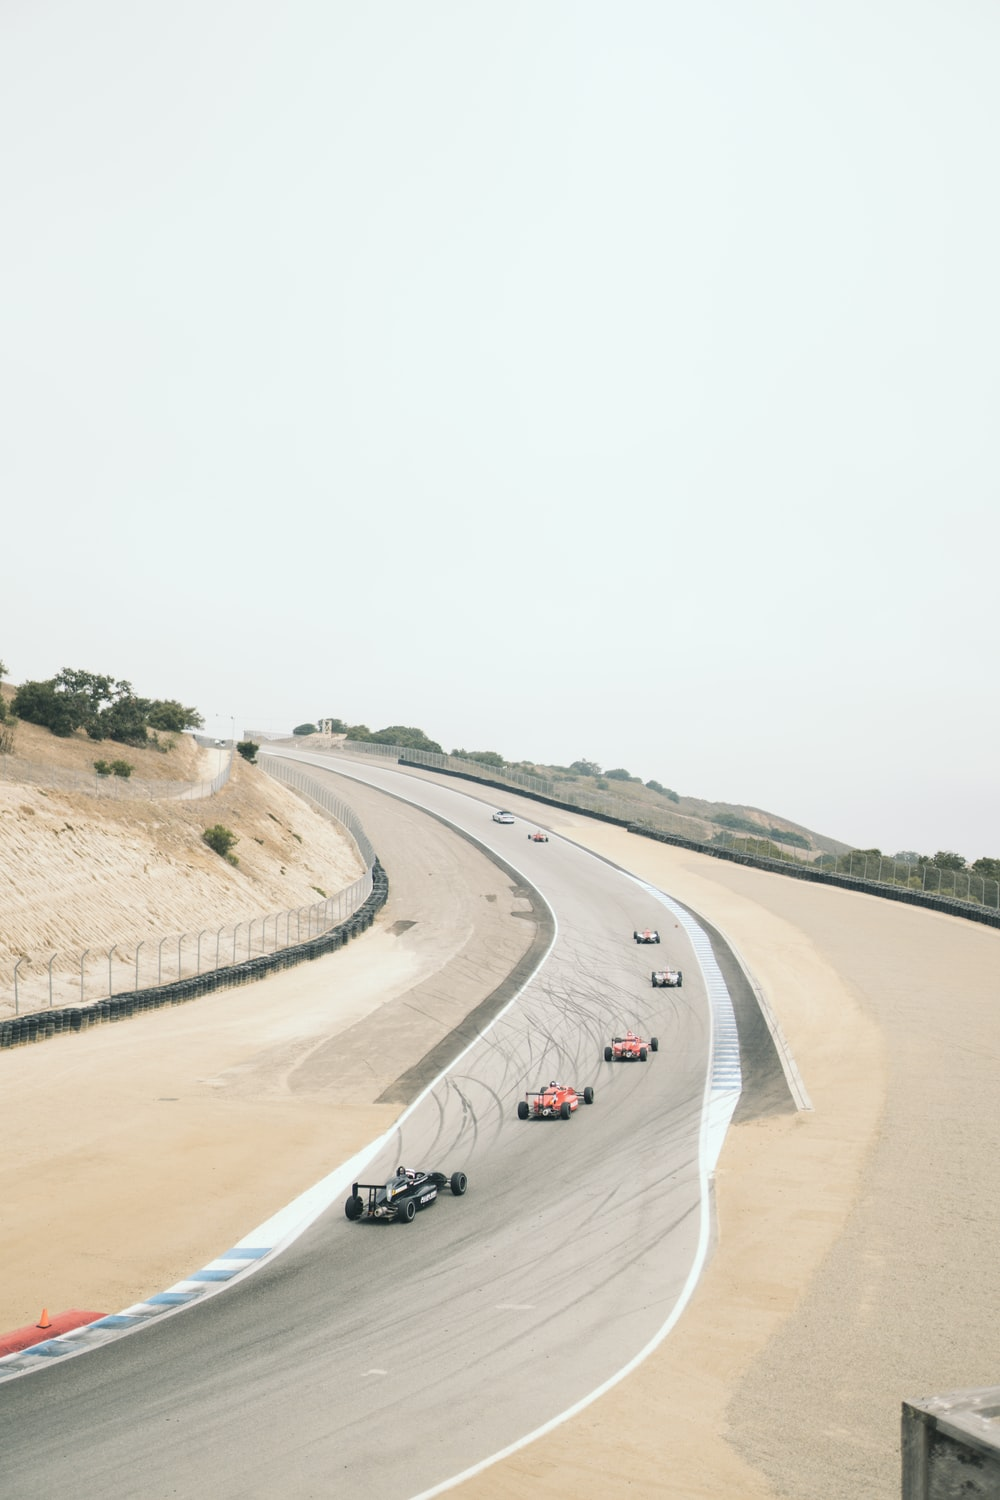 aerial photography of vehicles doing racing during daytime